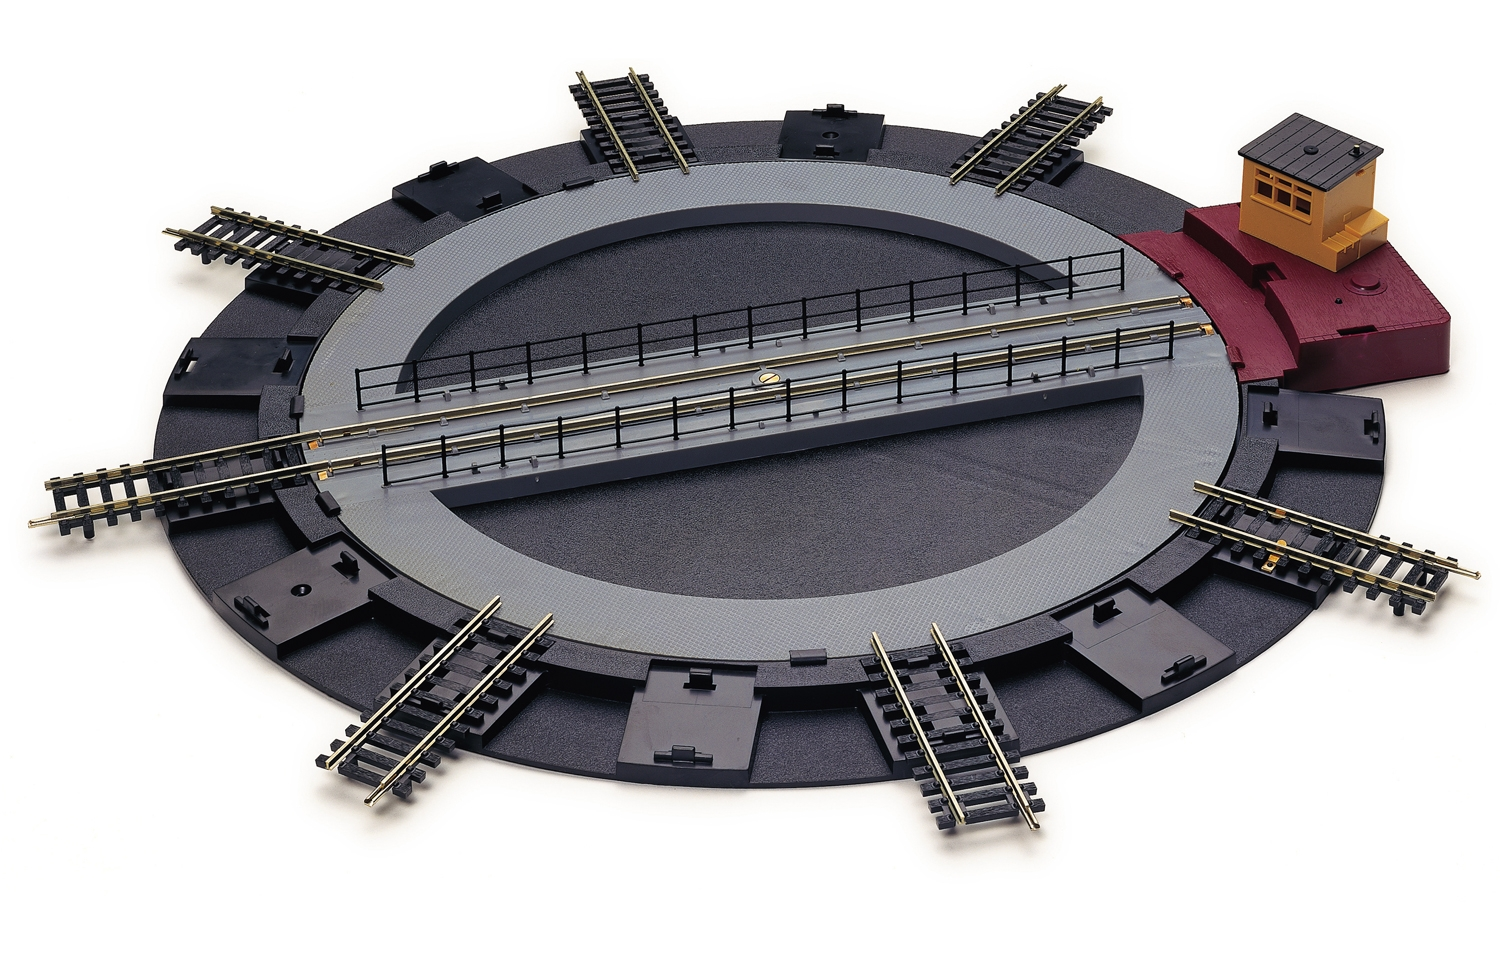 Model Railway Shop Hornby Track Accessories Railroad Wiring Train Layout Layouts Turntable R070